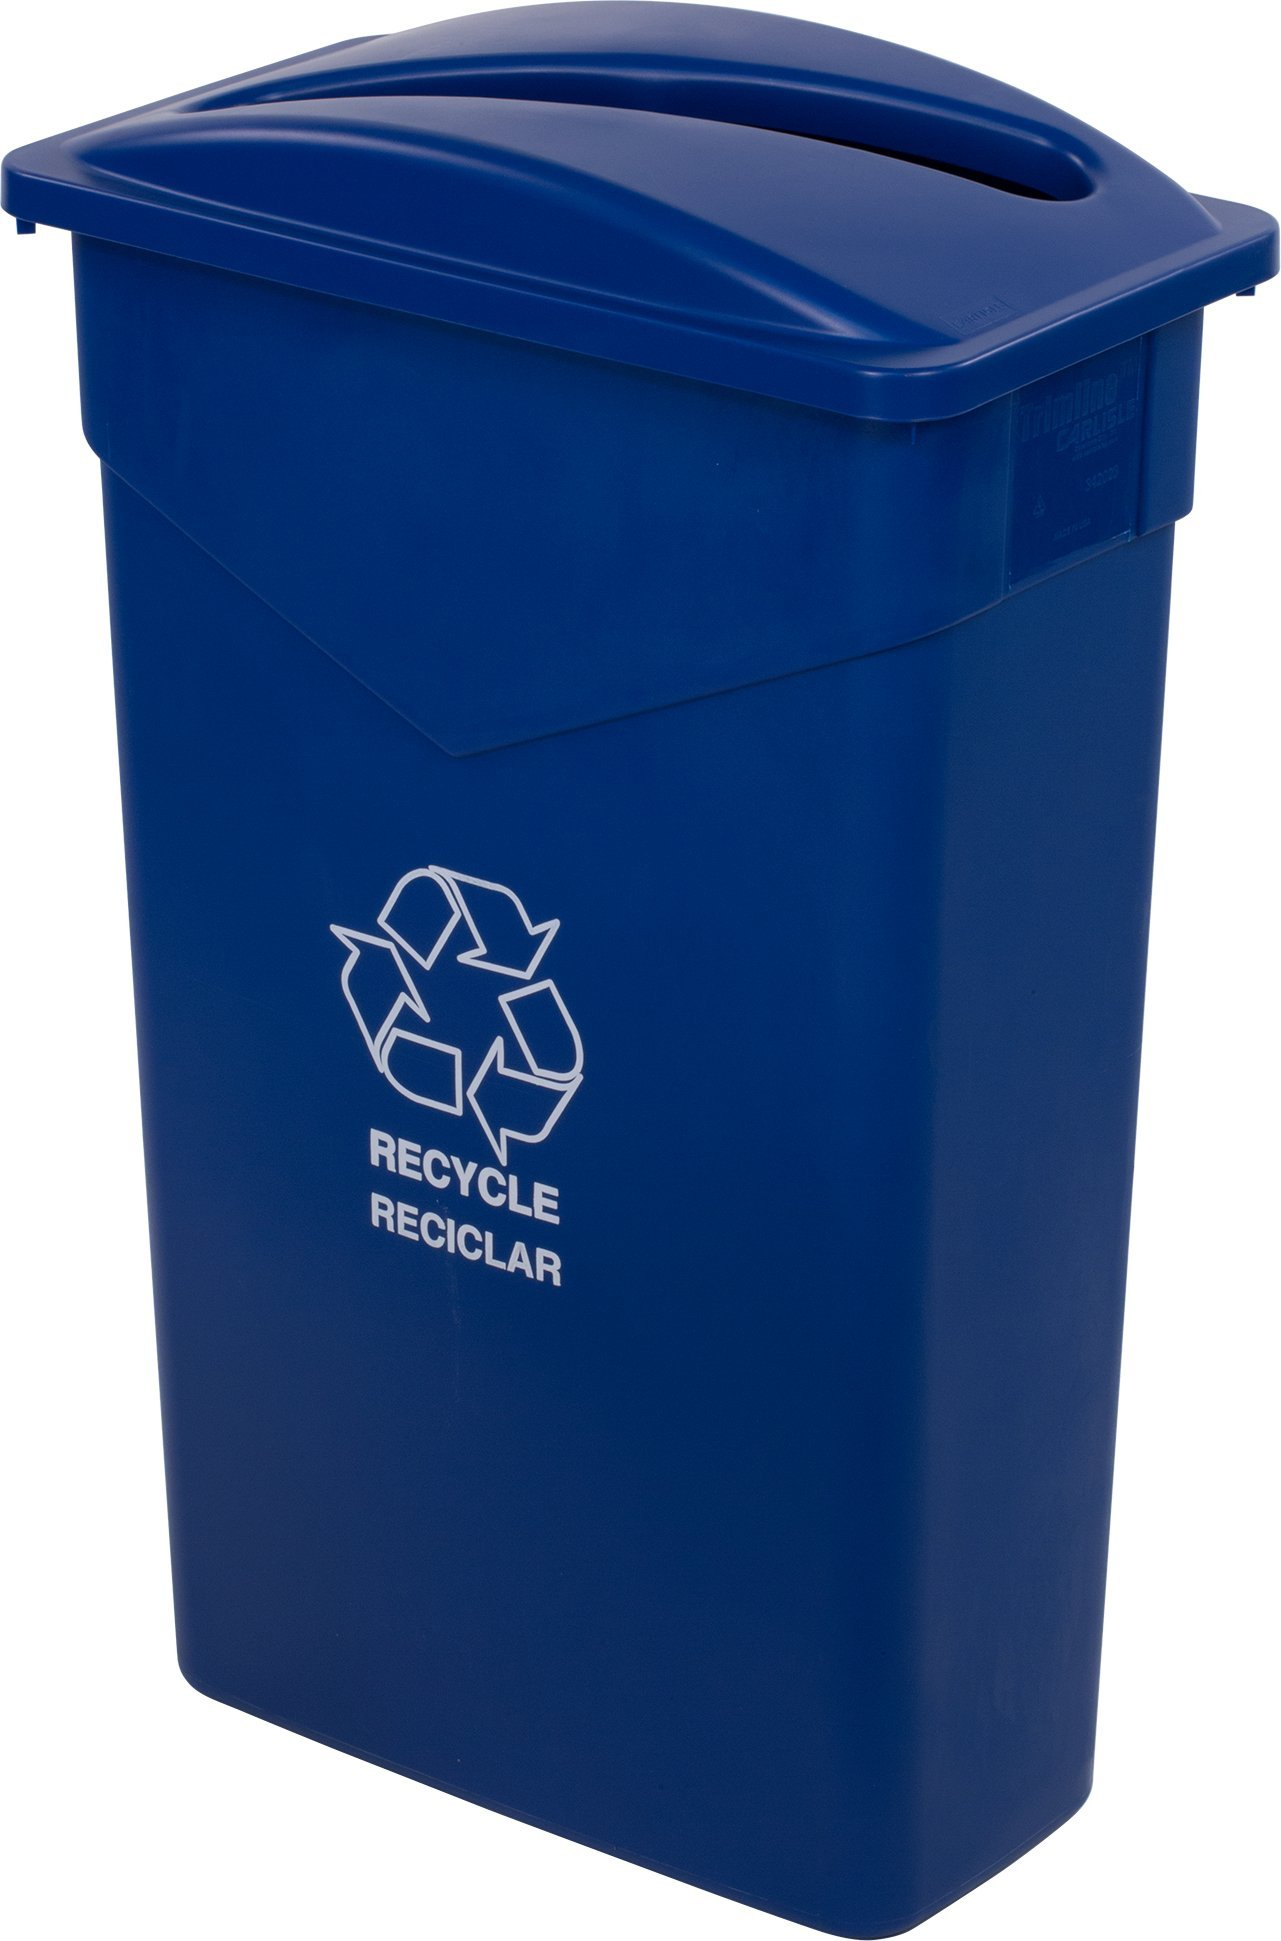 Carlisle 342023REC14 TrimLine LLDPE Recycle Can, 23 Gallon Capacity, 20'' Length x 11'' Width x 29.88'' Height, Blue by Carlisle (Image #6)